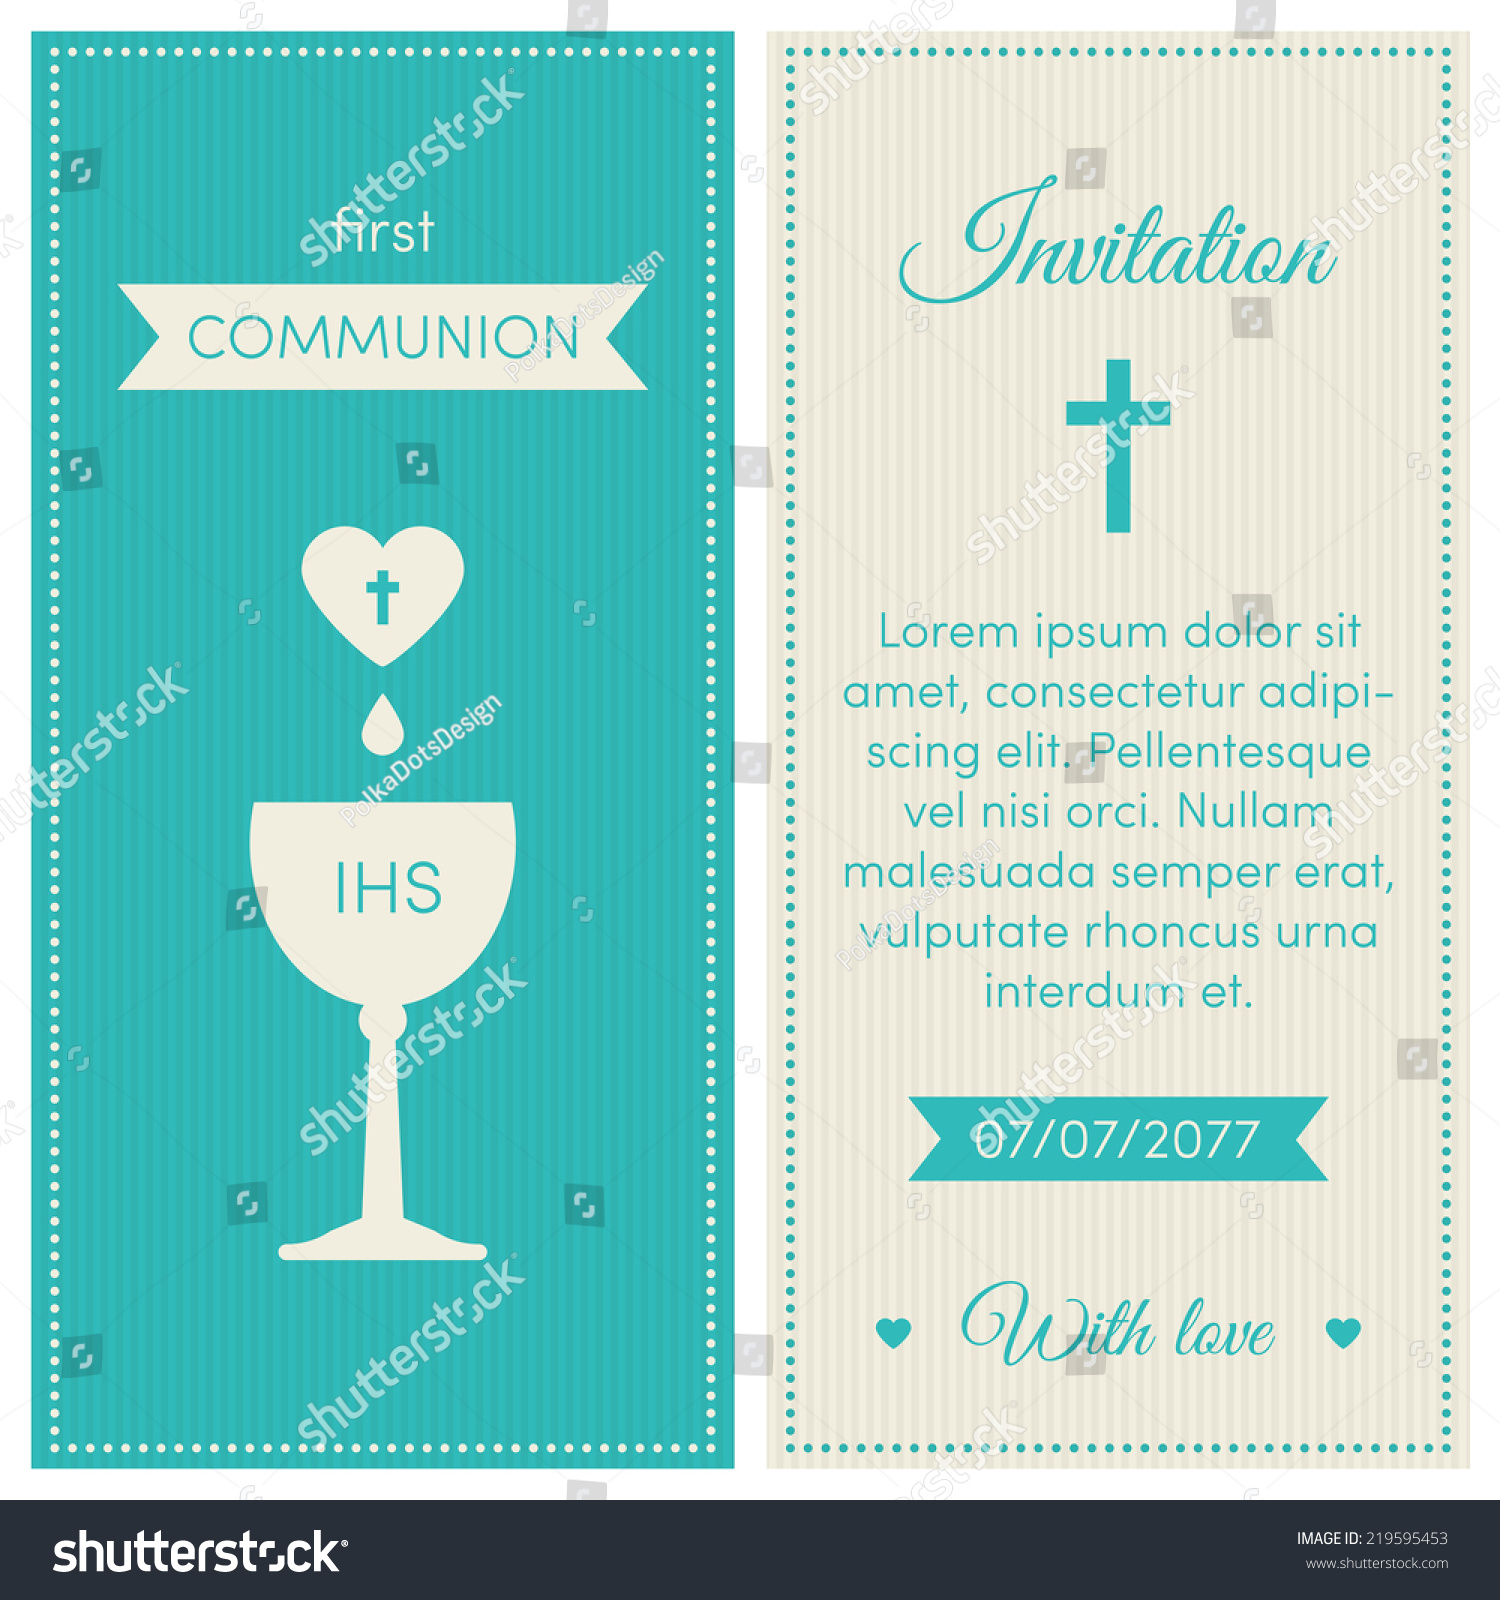 first communion invitation template blue and cream colors illustration of chalice with wine